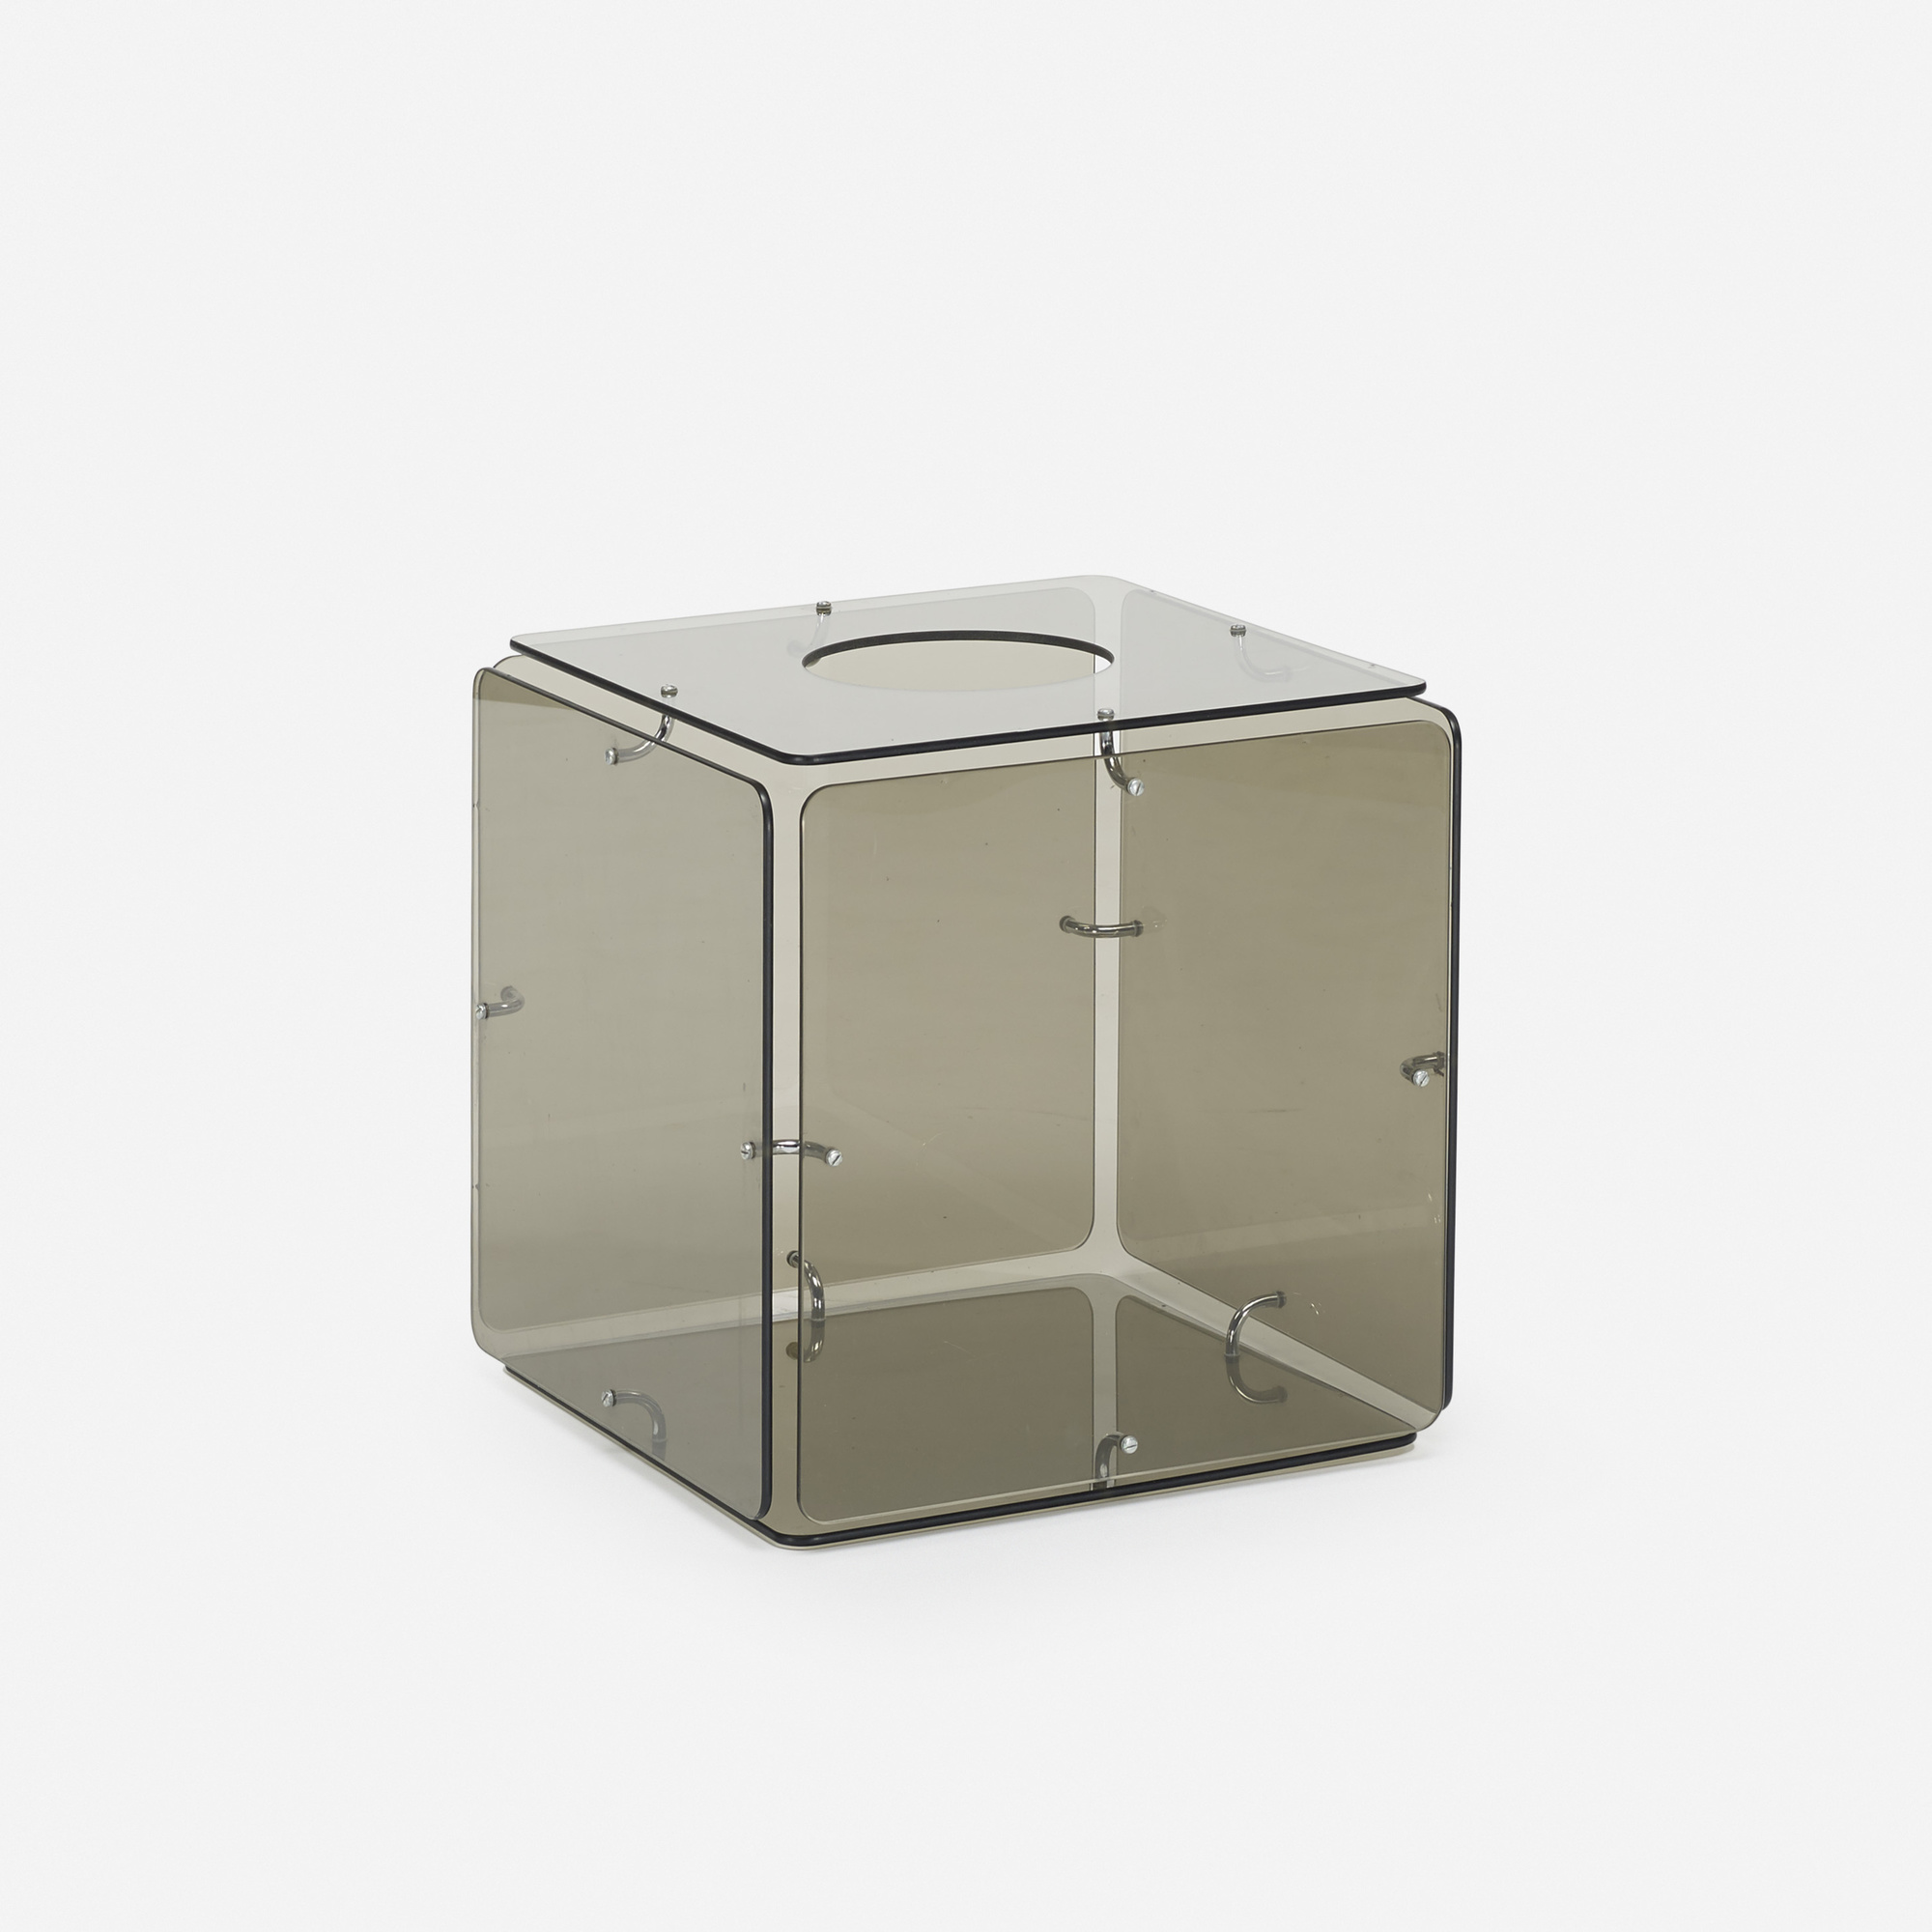 554: Gerald McCabe / occasional table (1 of 1)